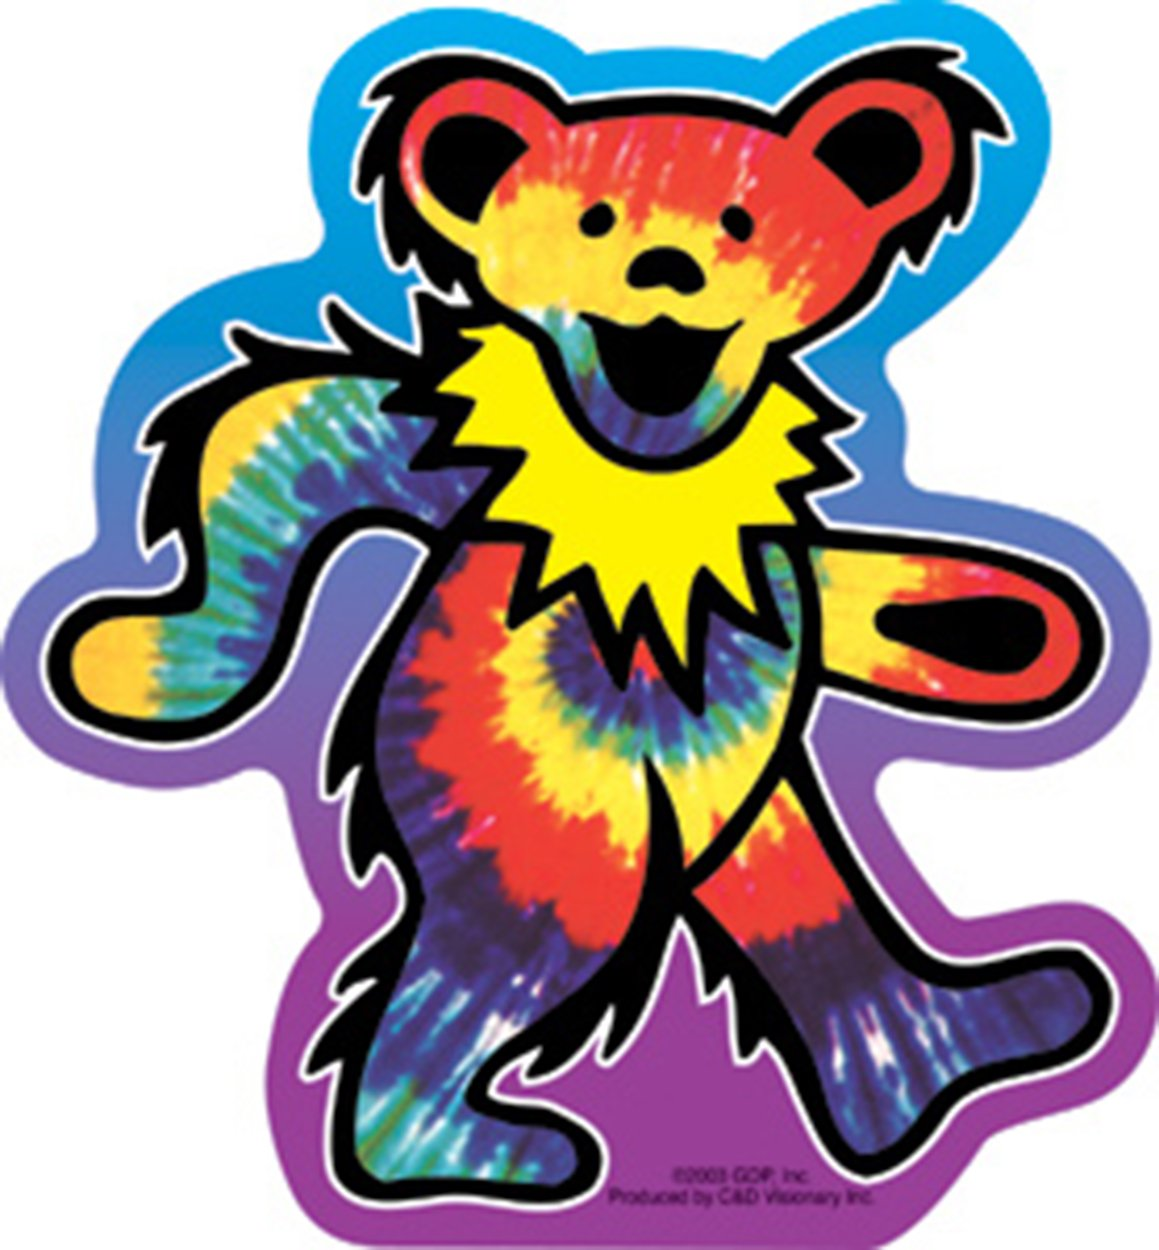 Licenses Products Grateful Dead Tie Dye Bear Sticker C/&D Visionary Inc S-3028